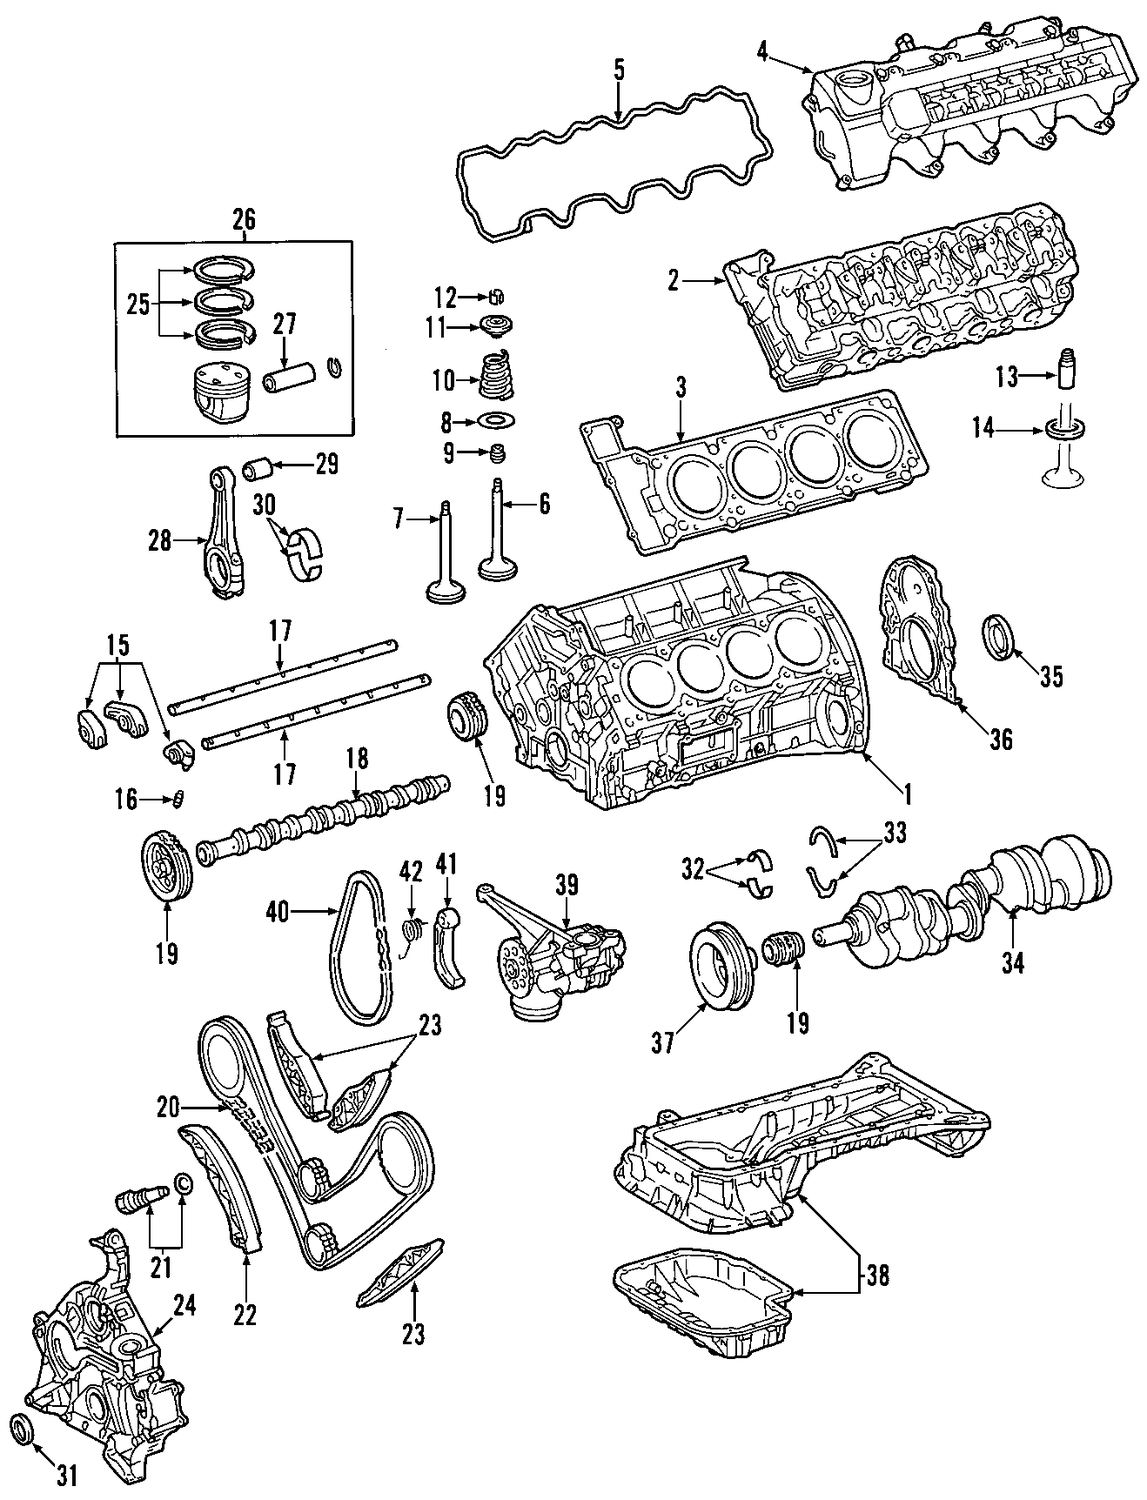 Mercedes Sprinter Engine Diagram